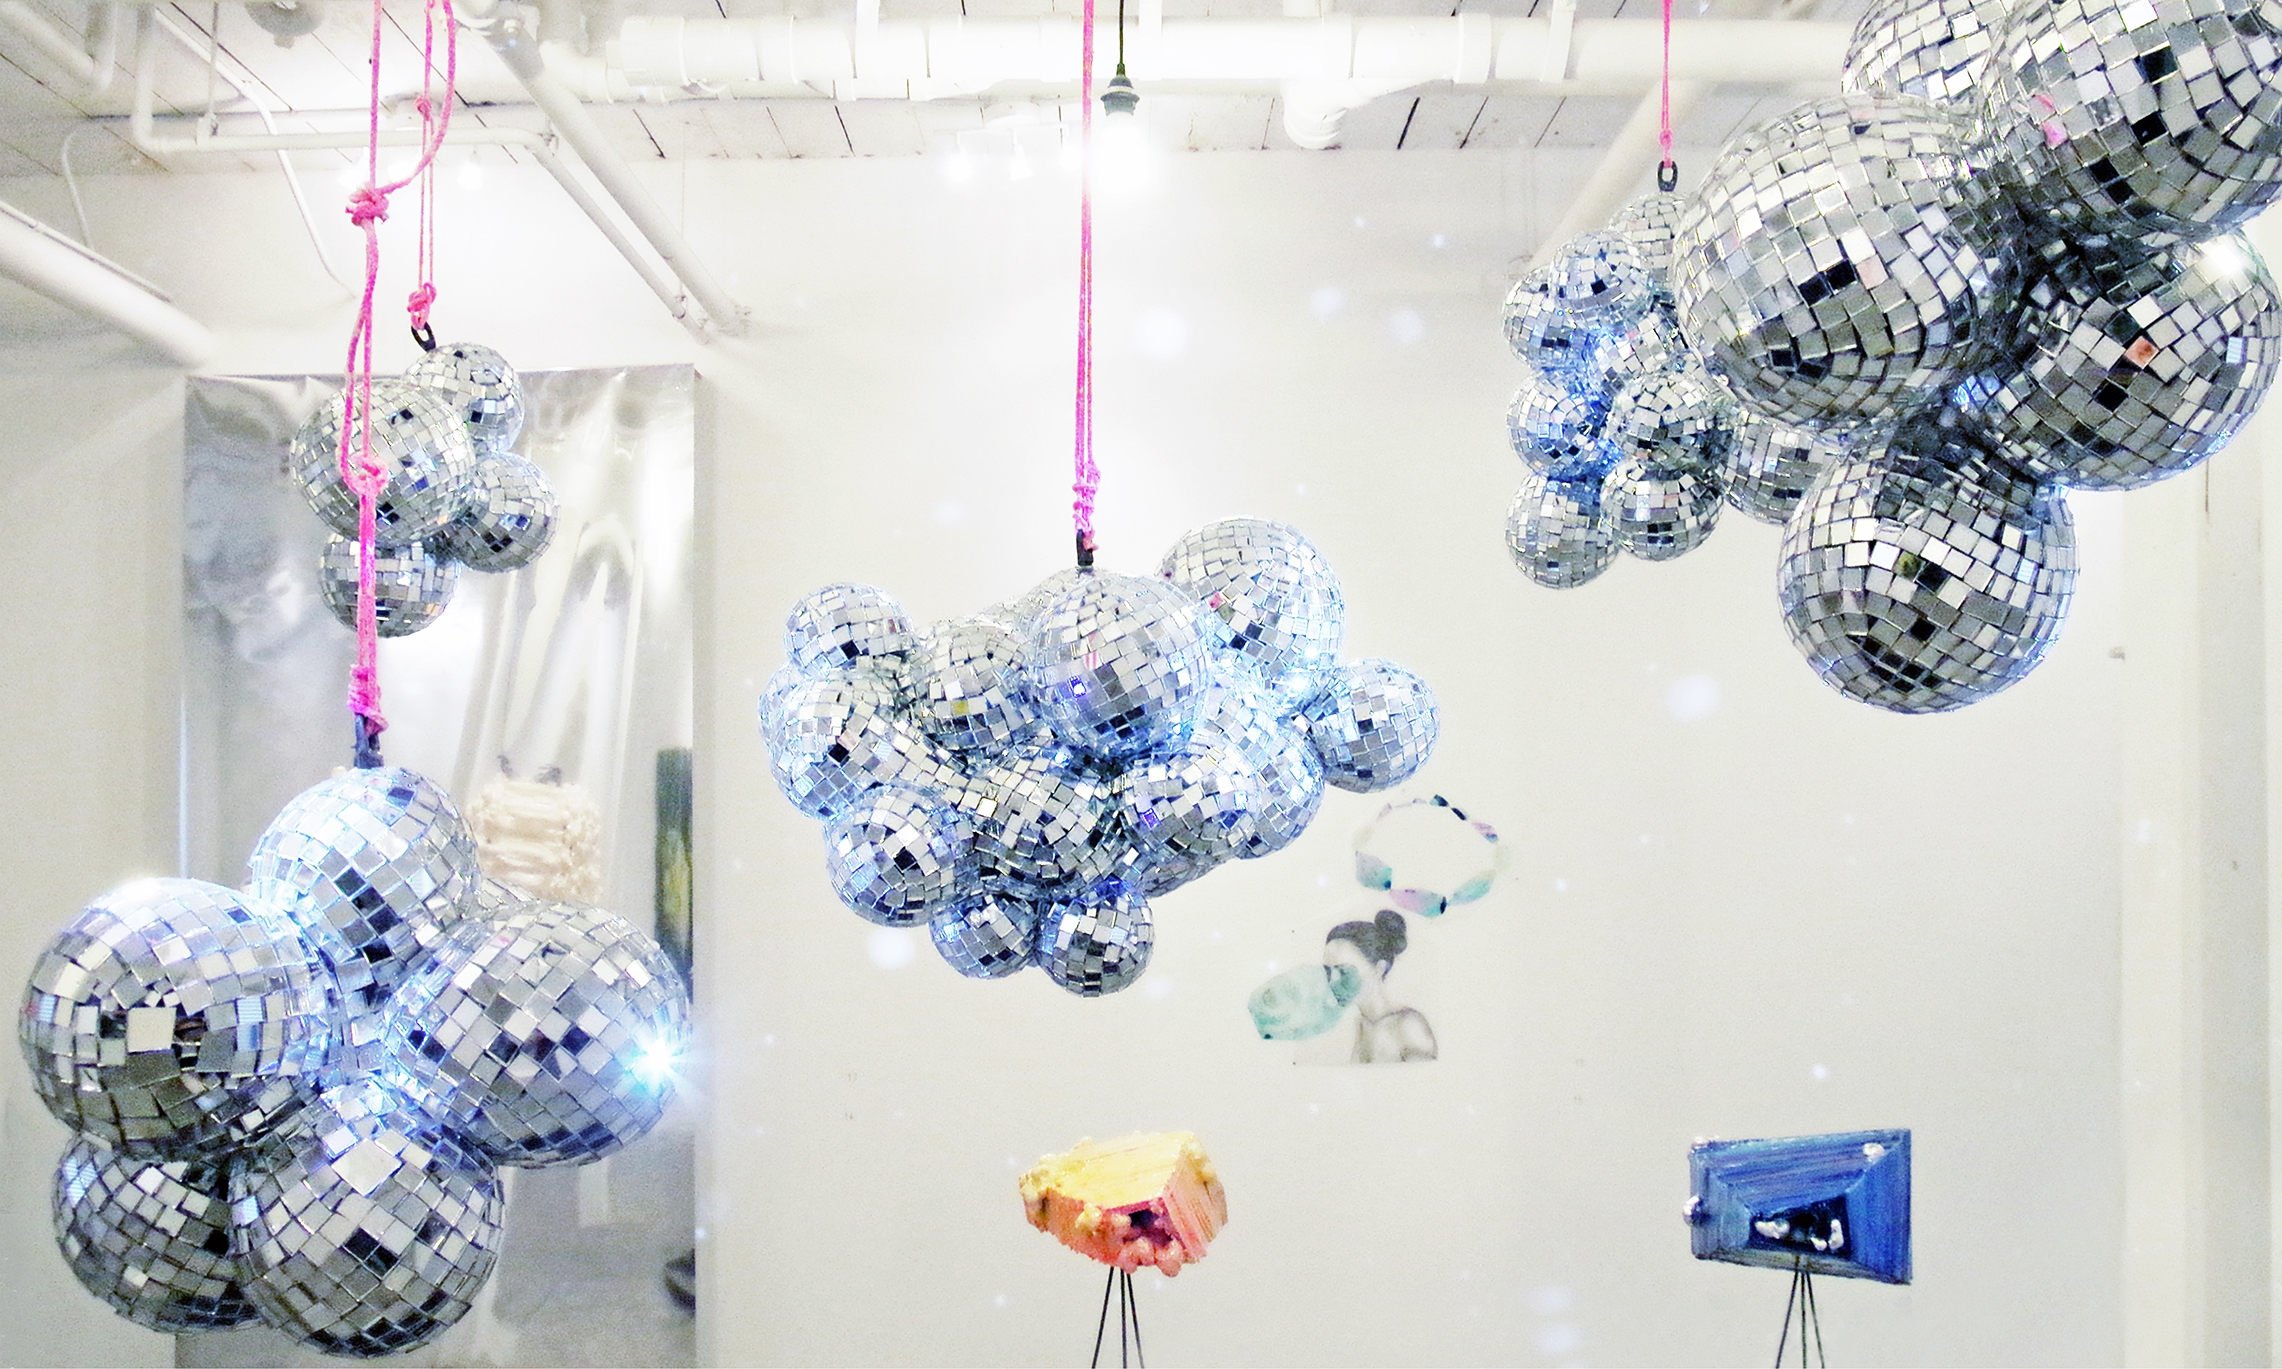 8. Super Cloud Spectro-Disorient by Leah Piepgras. Epoxy resin, silicone, mirrors, steel, motors, pin lights, rope, glass beads 2014.jpg